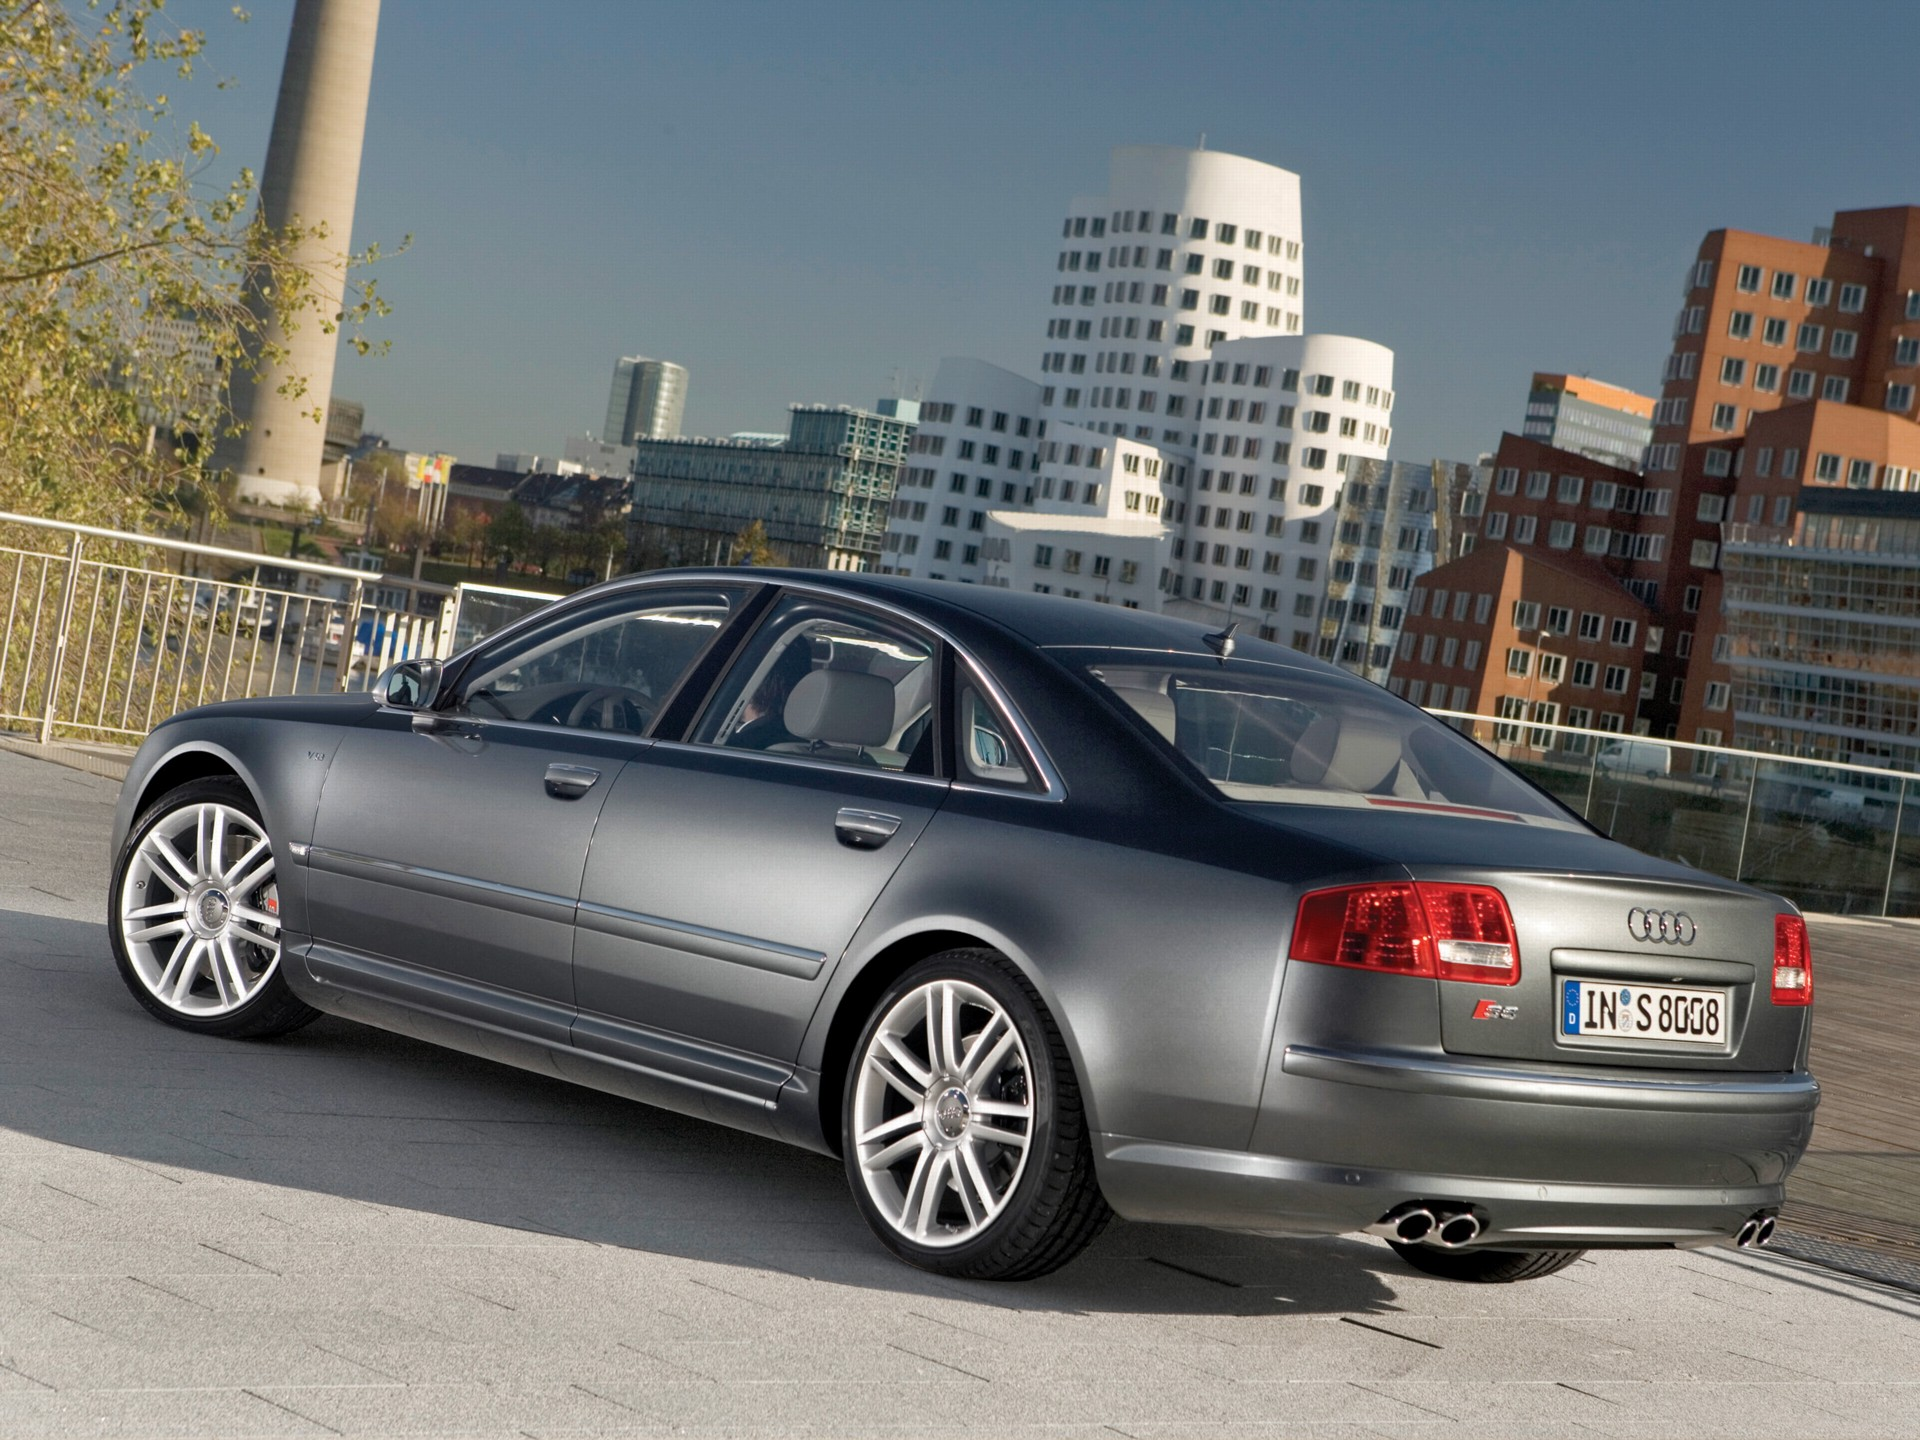 Audi S Image Photo Of - 2007 audi s8